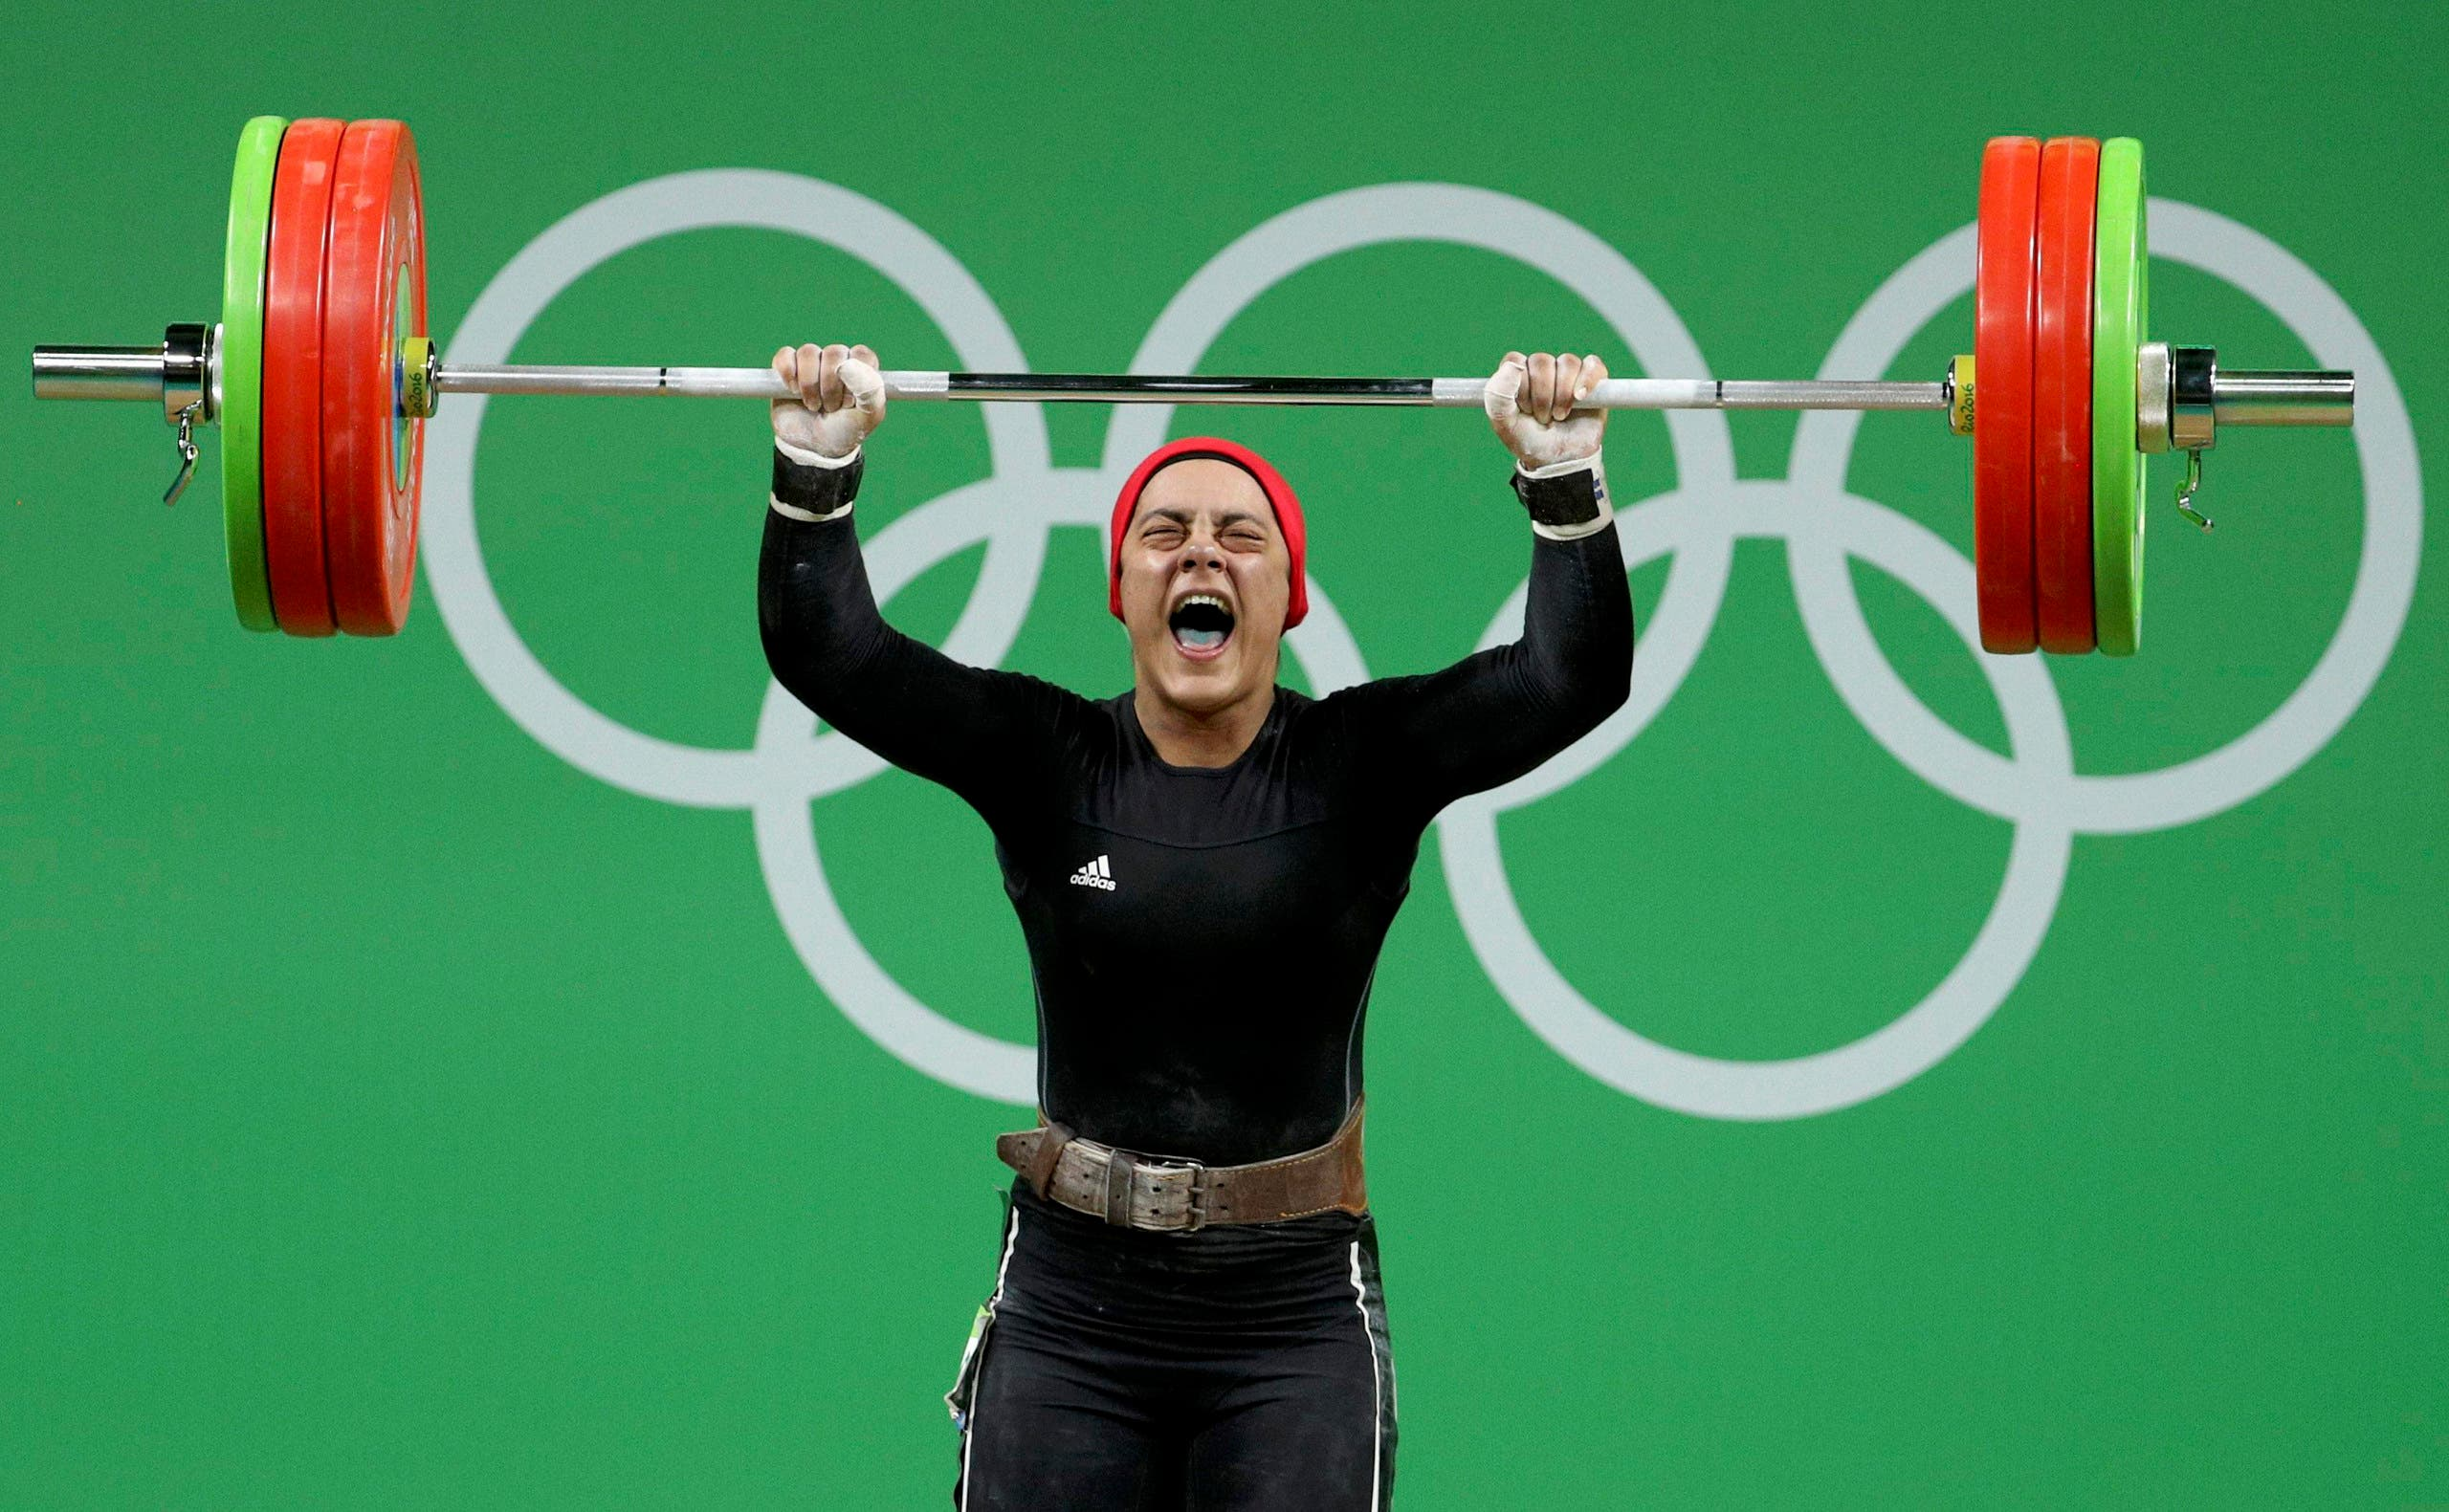 Sara Ahmed (EGY) of Egypt competes. REUTERS